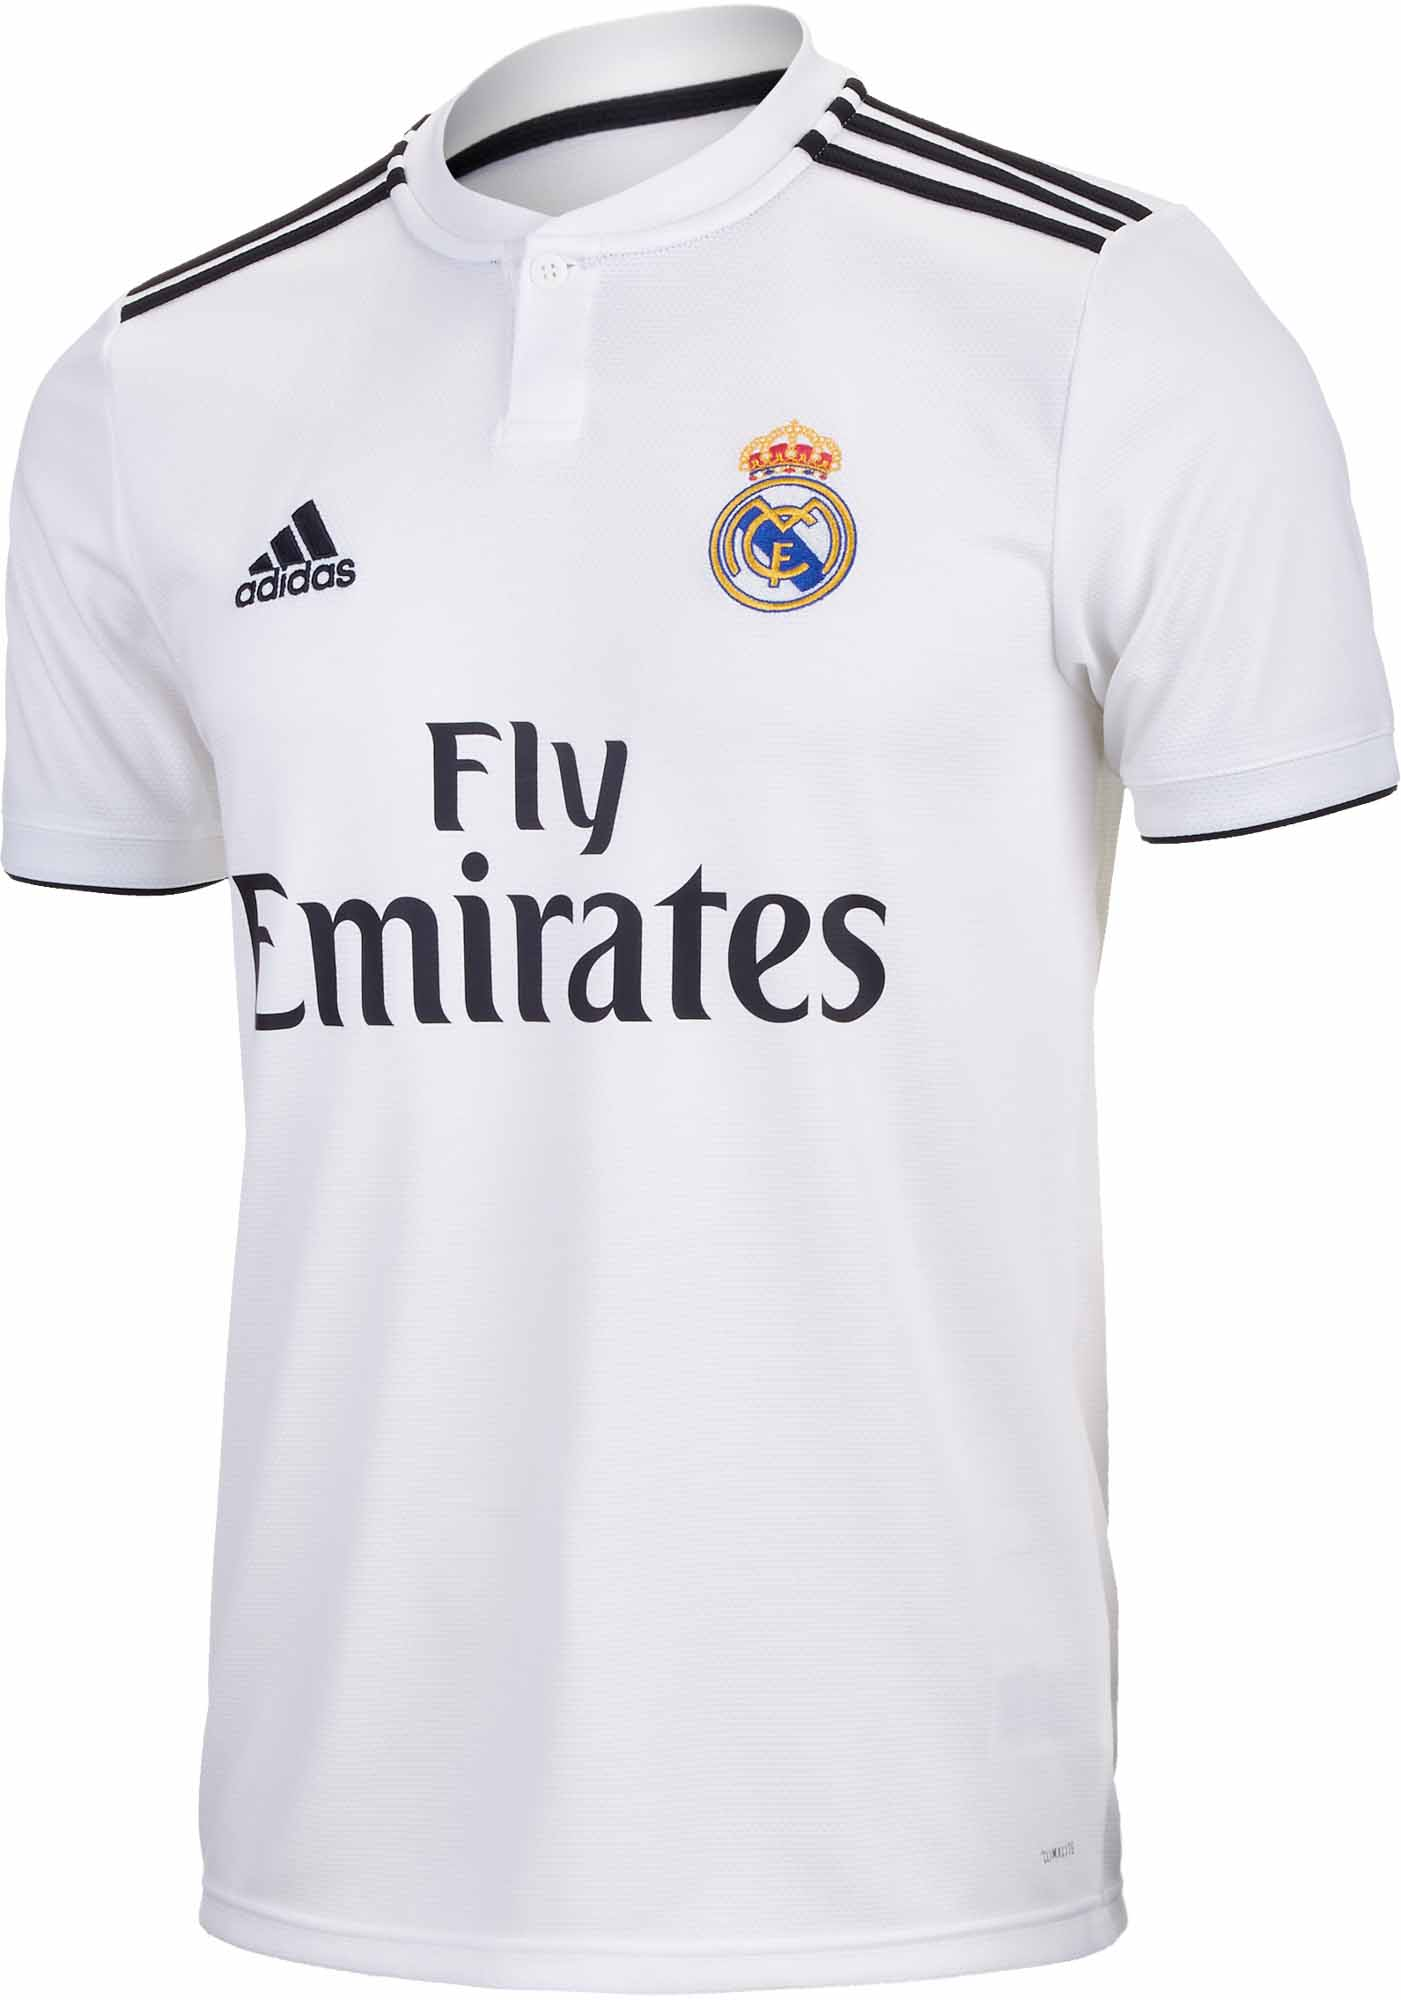 Jersey 2018/19 Master Madrid Soccer adidas Home Real -